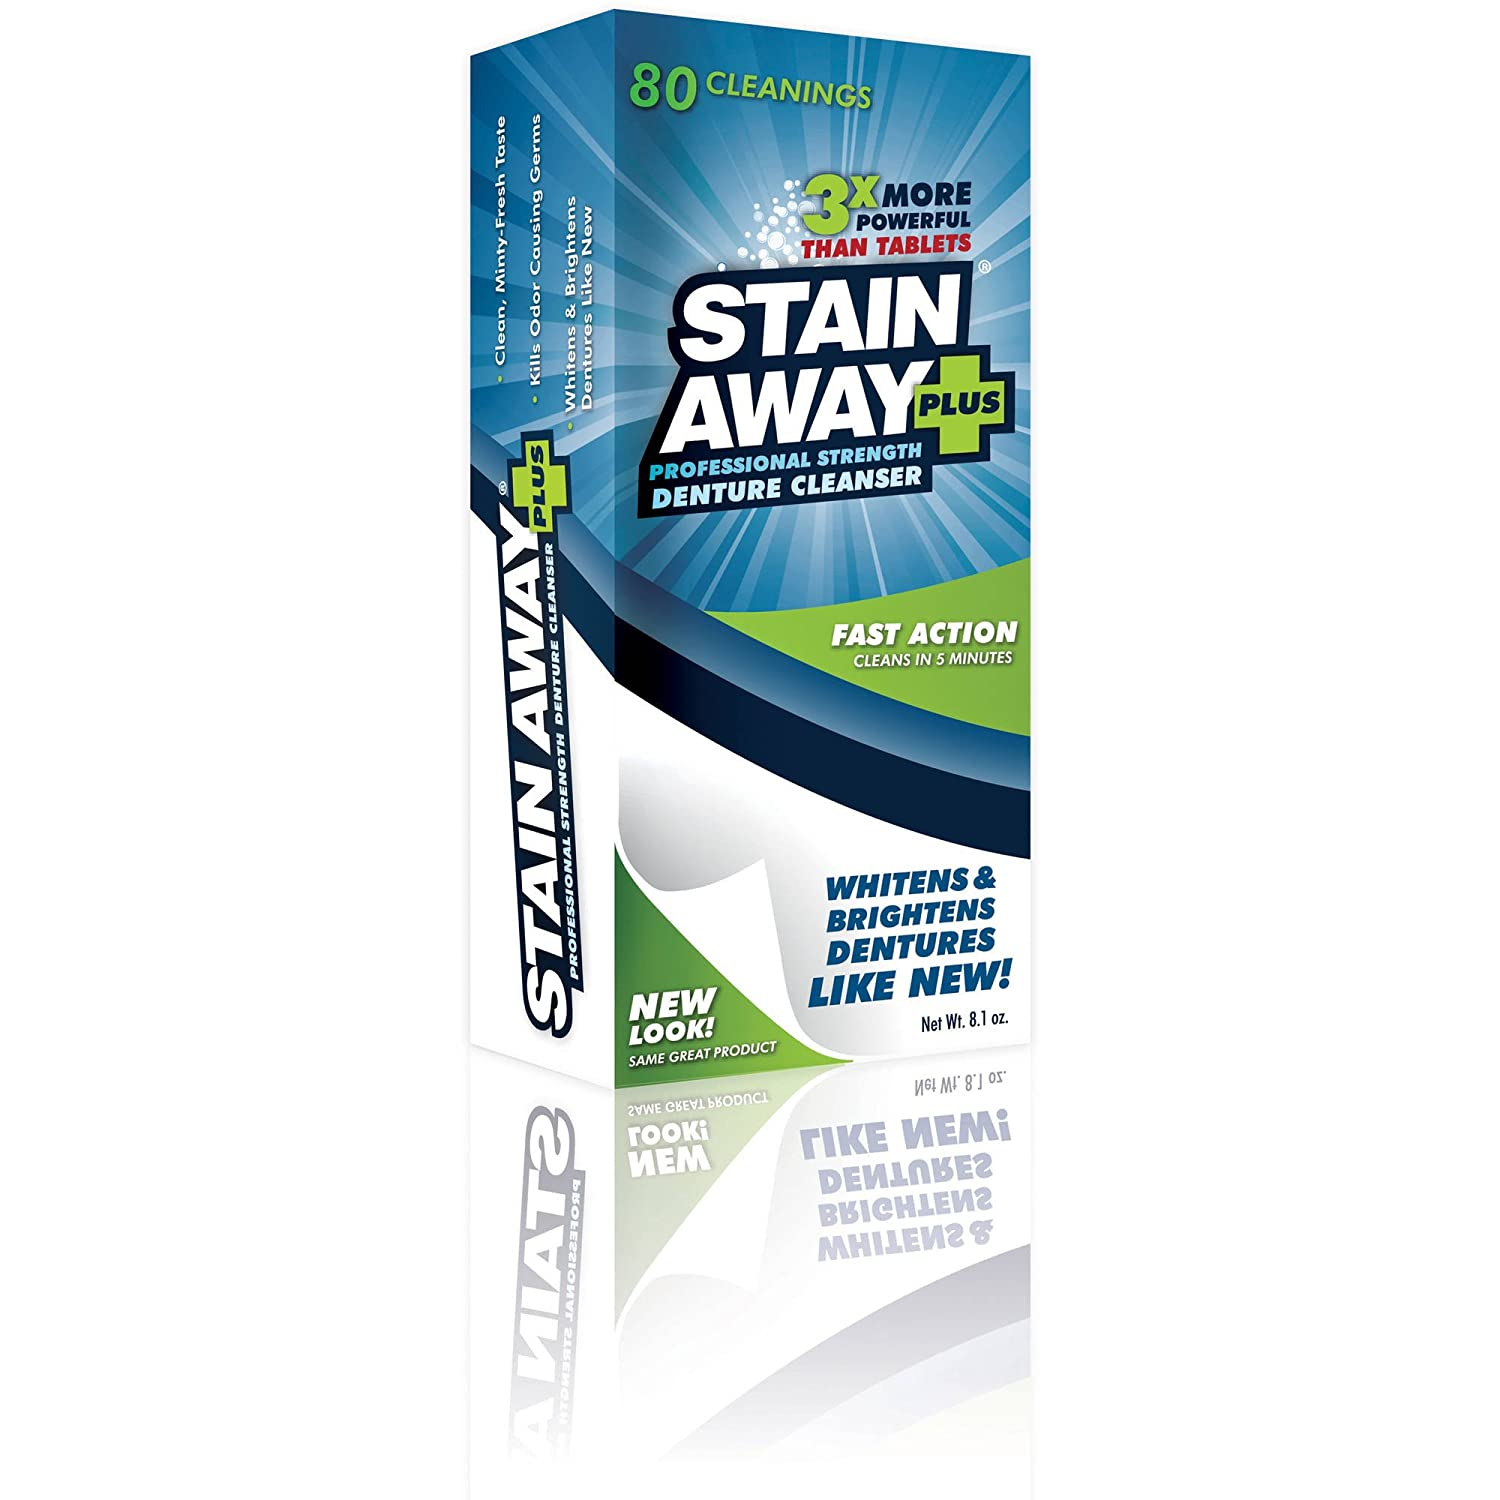 Stain Away Plus Denture Cleanser, 8.1 oz by Stain Away (Pack of 3)